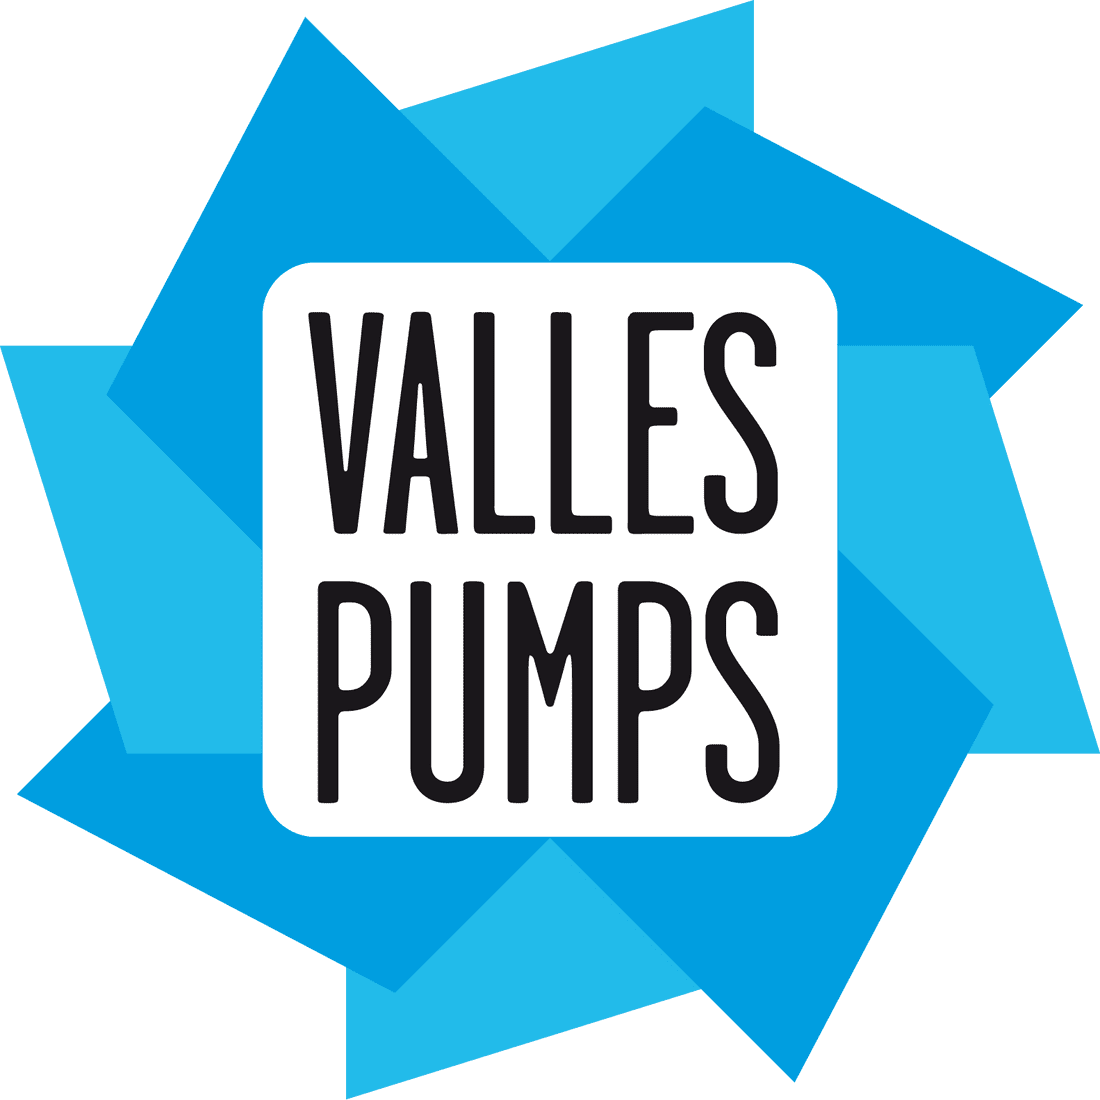 Valles Pumps